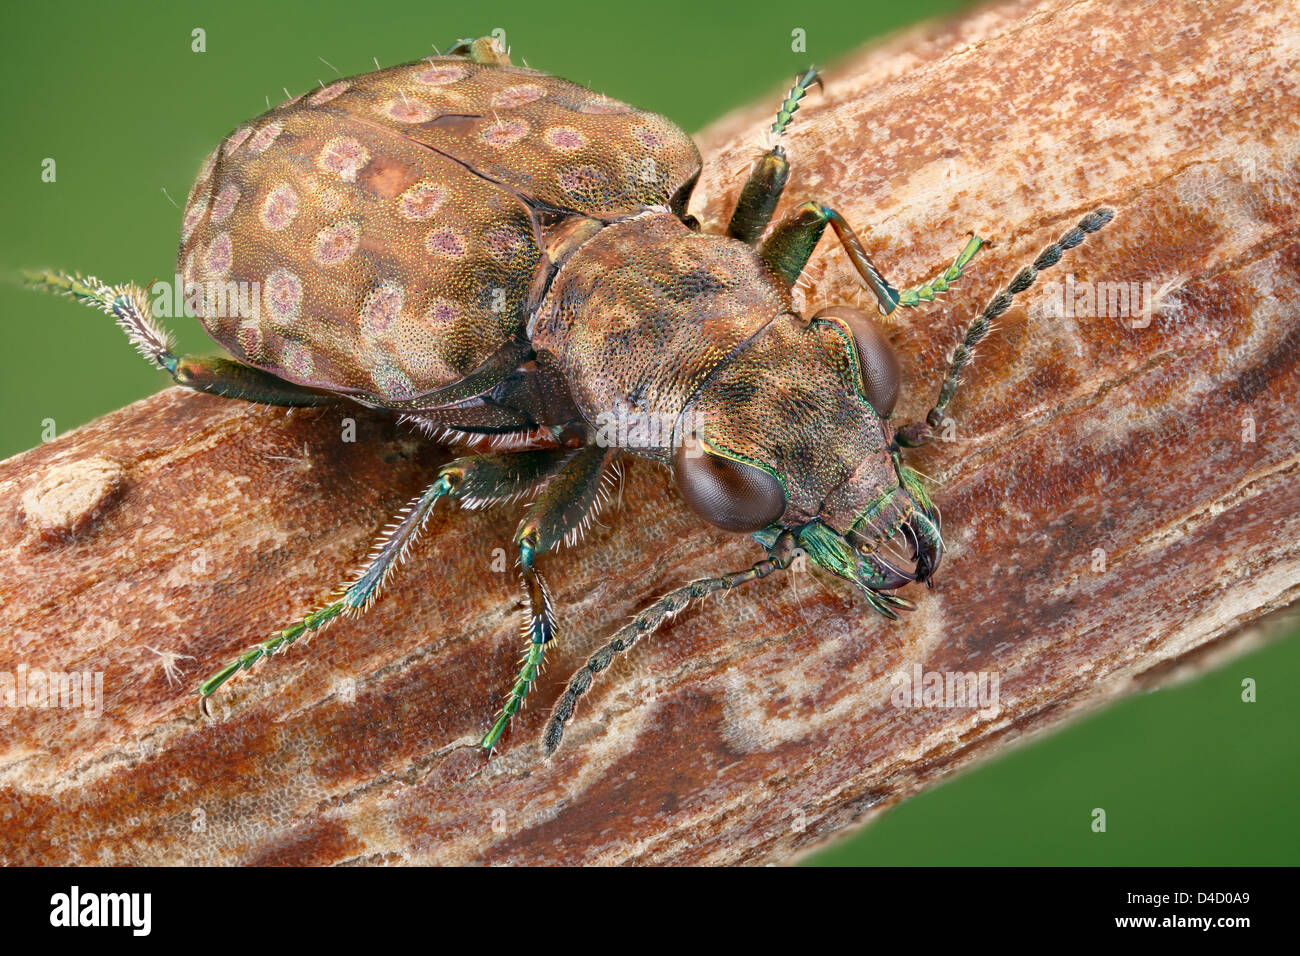 Ground beetle Elaphrus riparius on a twig, extreme close-up - Stock Image